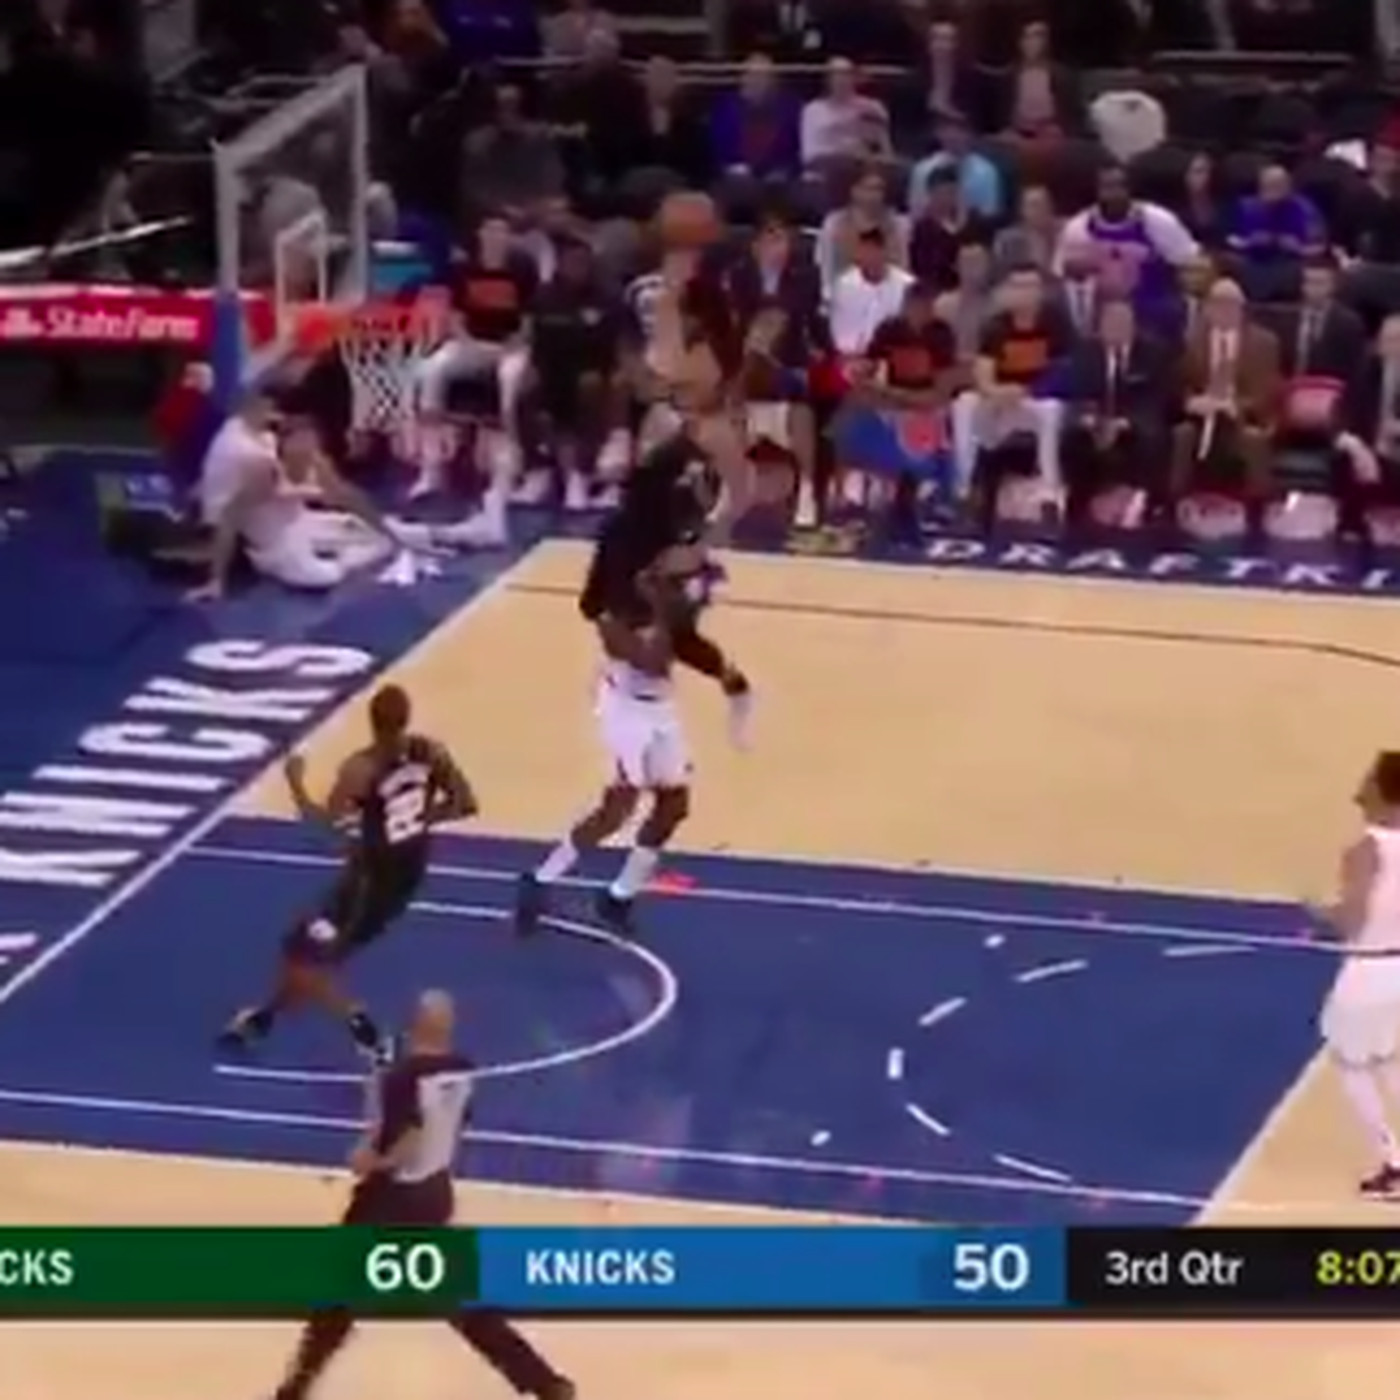 Giannis Antetokounmpo Dunked Cleanly Over Tim Hardaway Jr